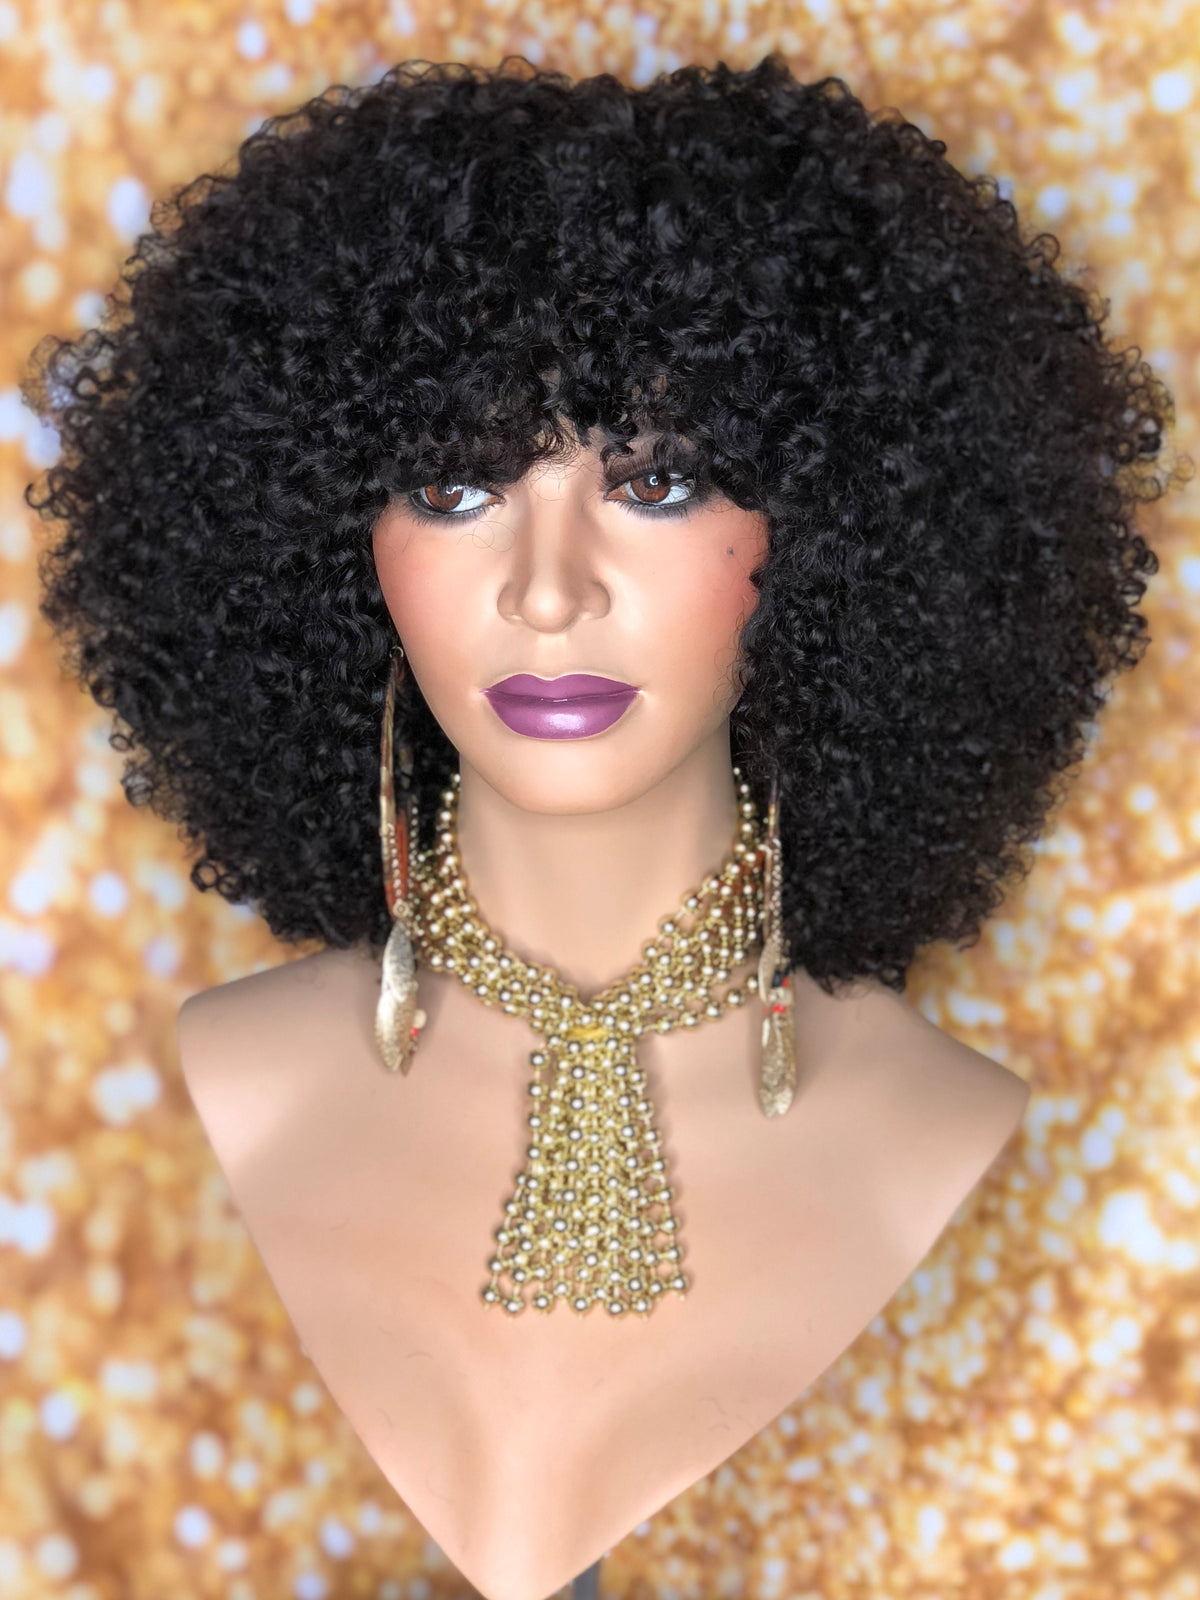 TreBella Wigs 12in Kinky Curly full unit - TreBella Wigs